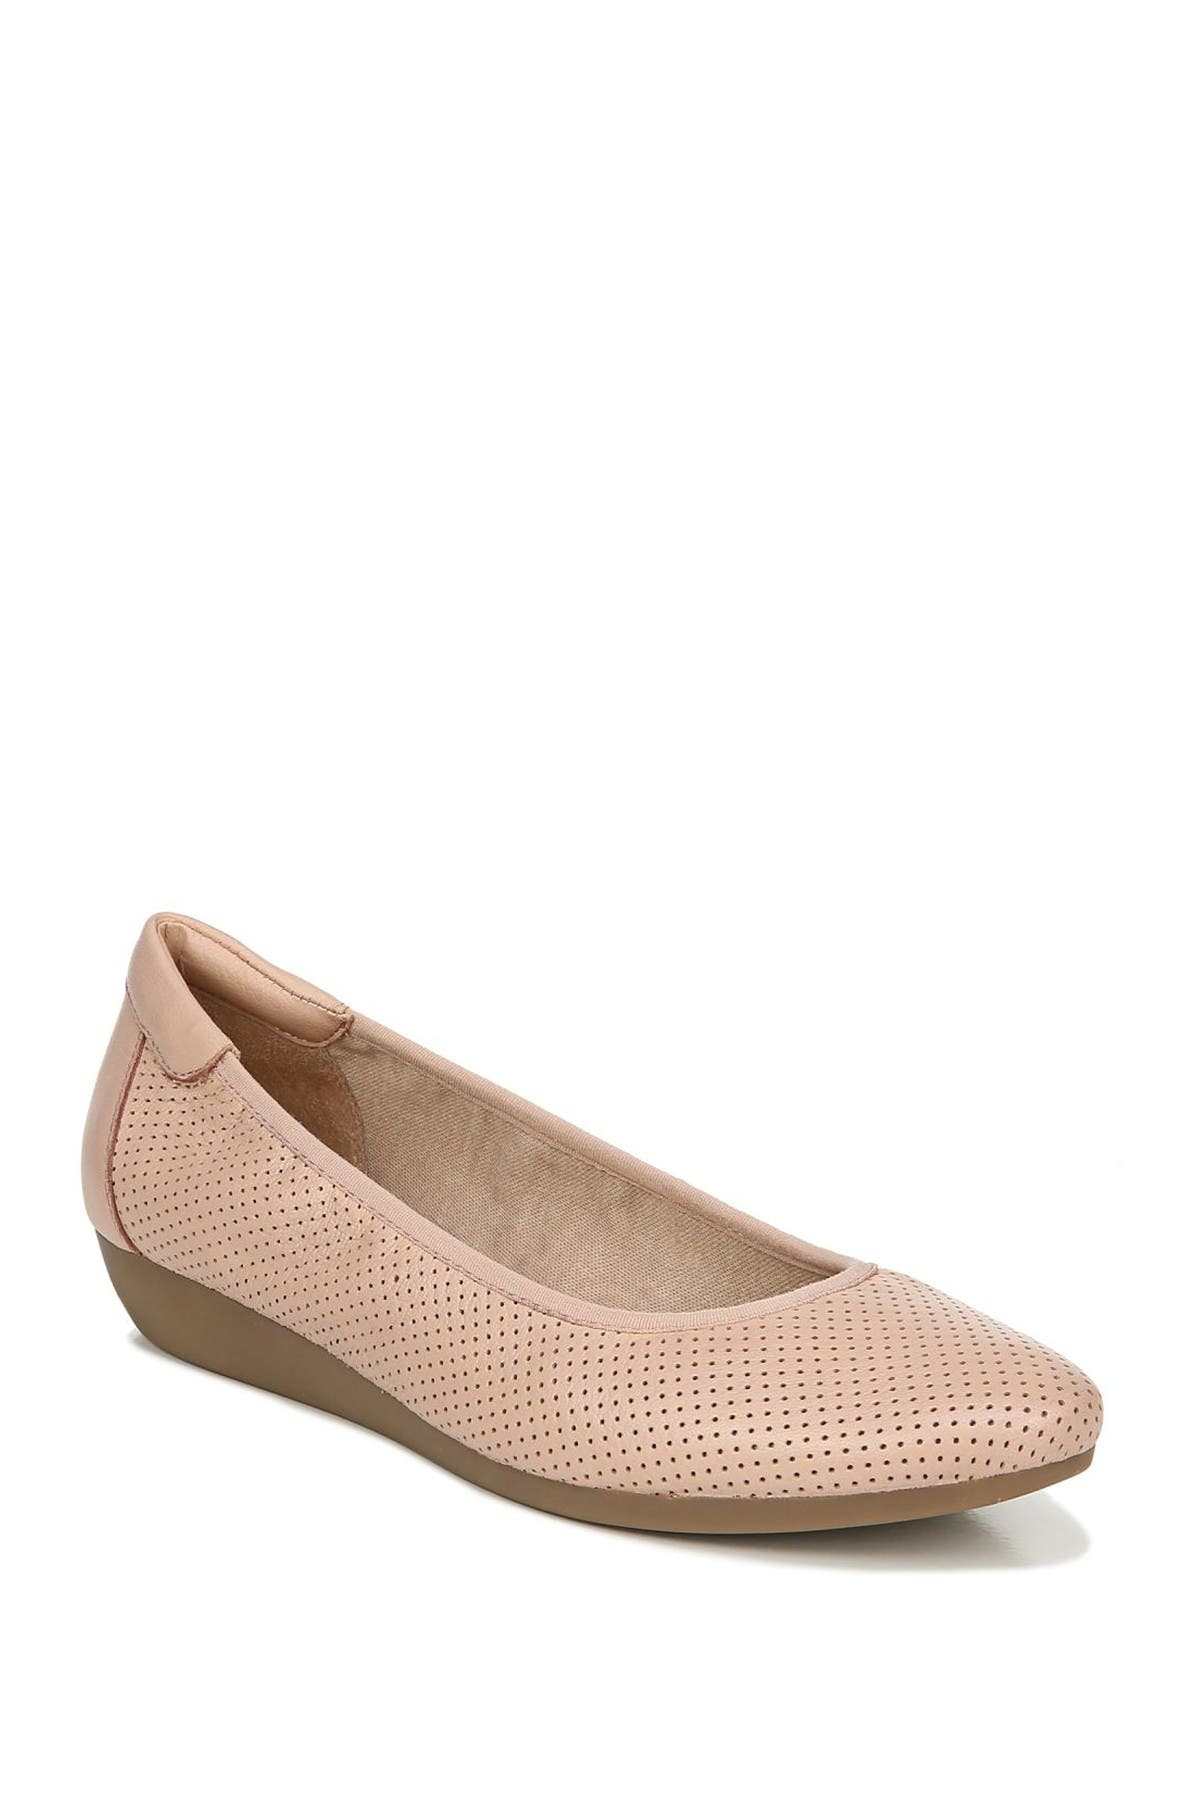 Image of SOUL Naturalizer Vicki Leather Wedge Flat - Wide Width Available